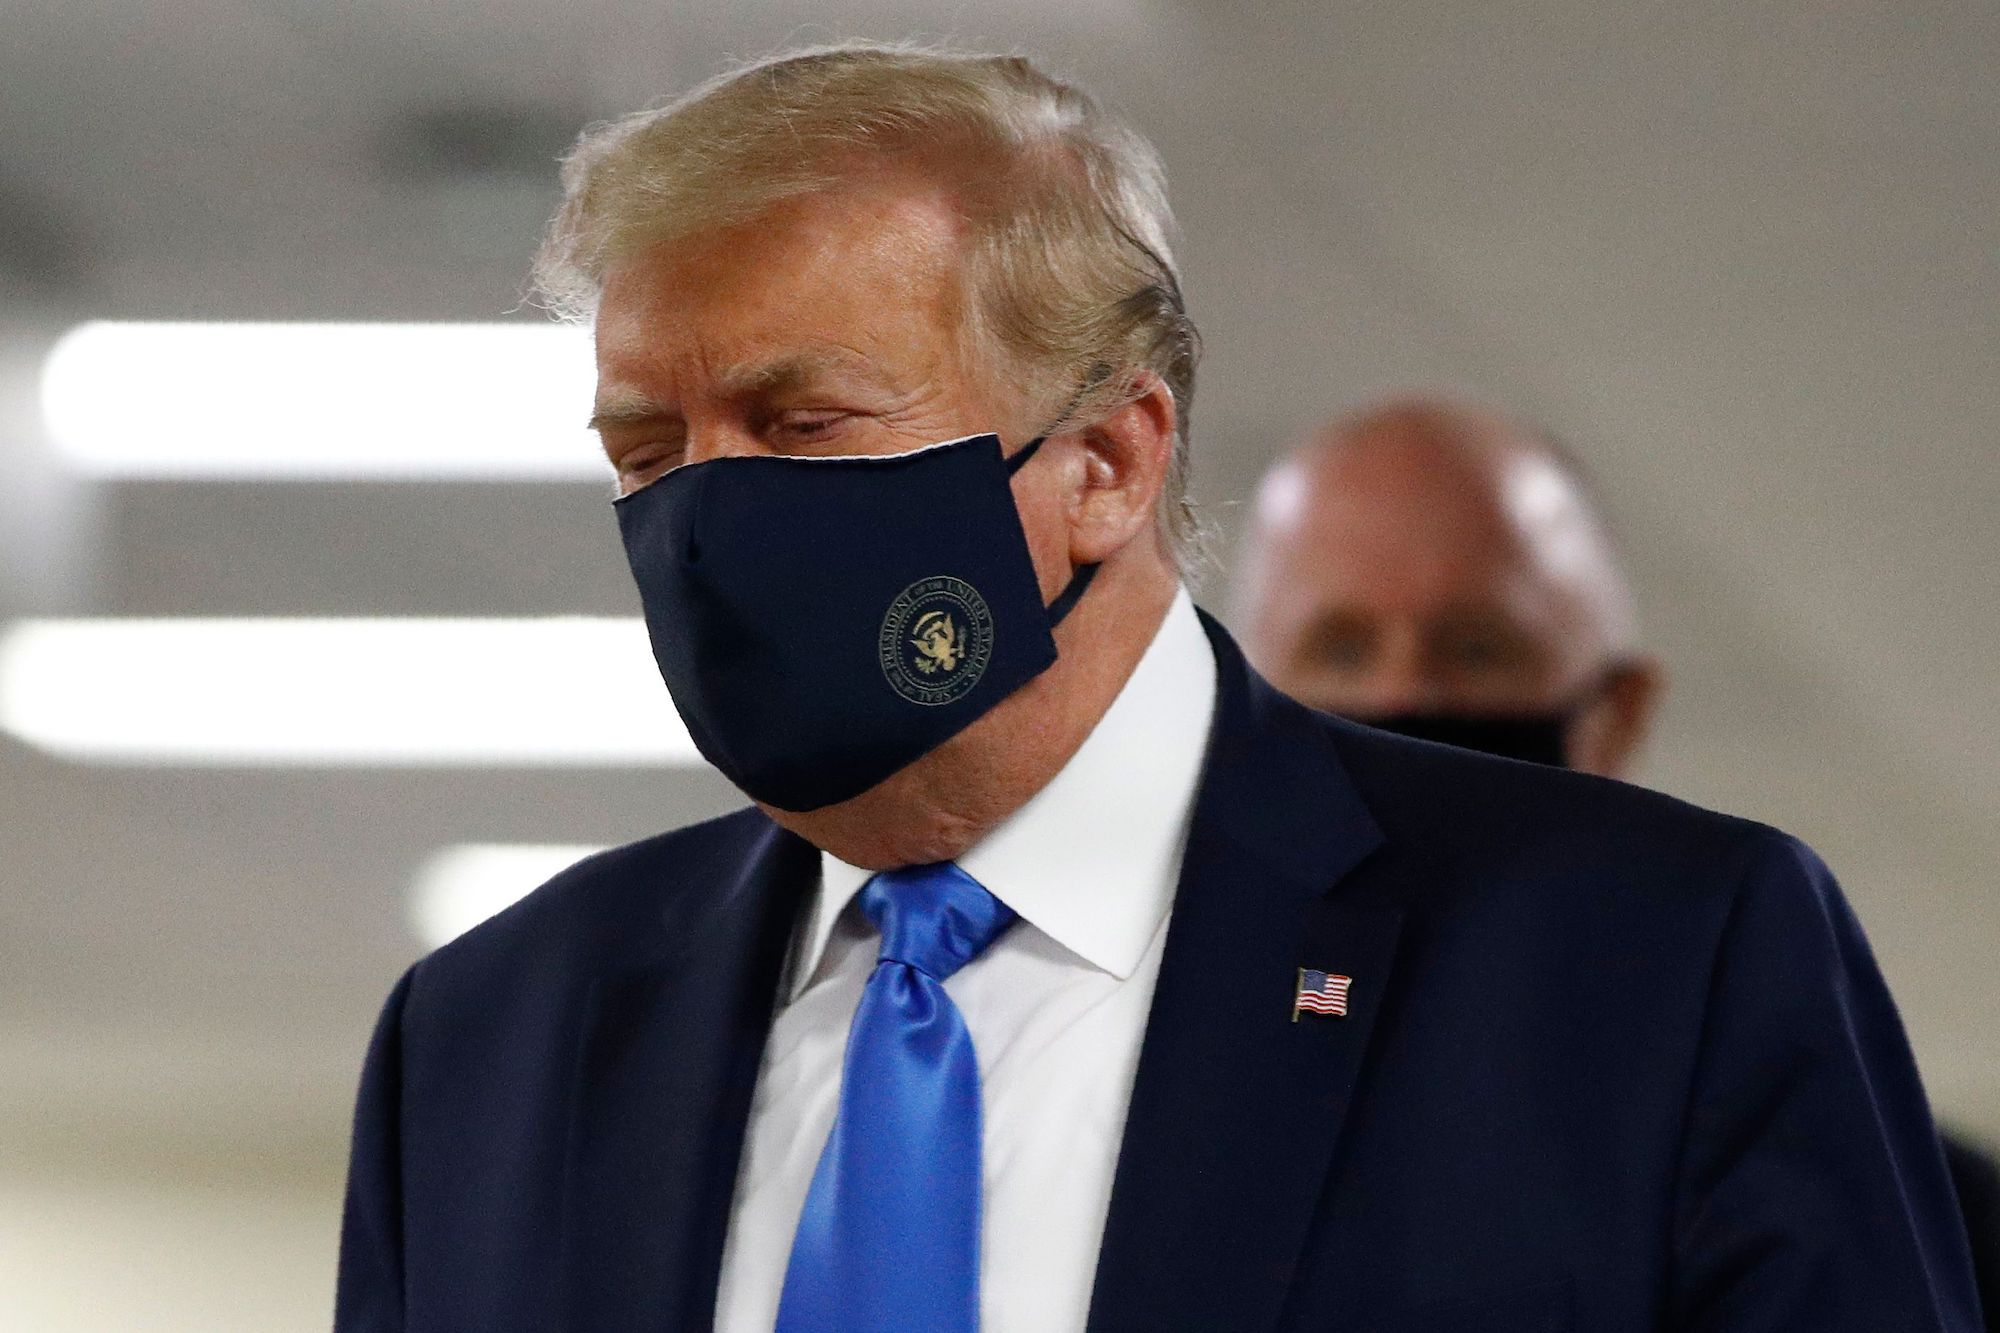 rollingstone.com - Peter Wade - Trump Wore a Mask. Sadly This Is News